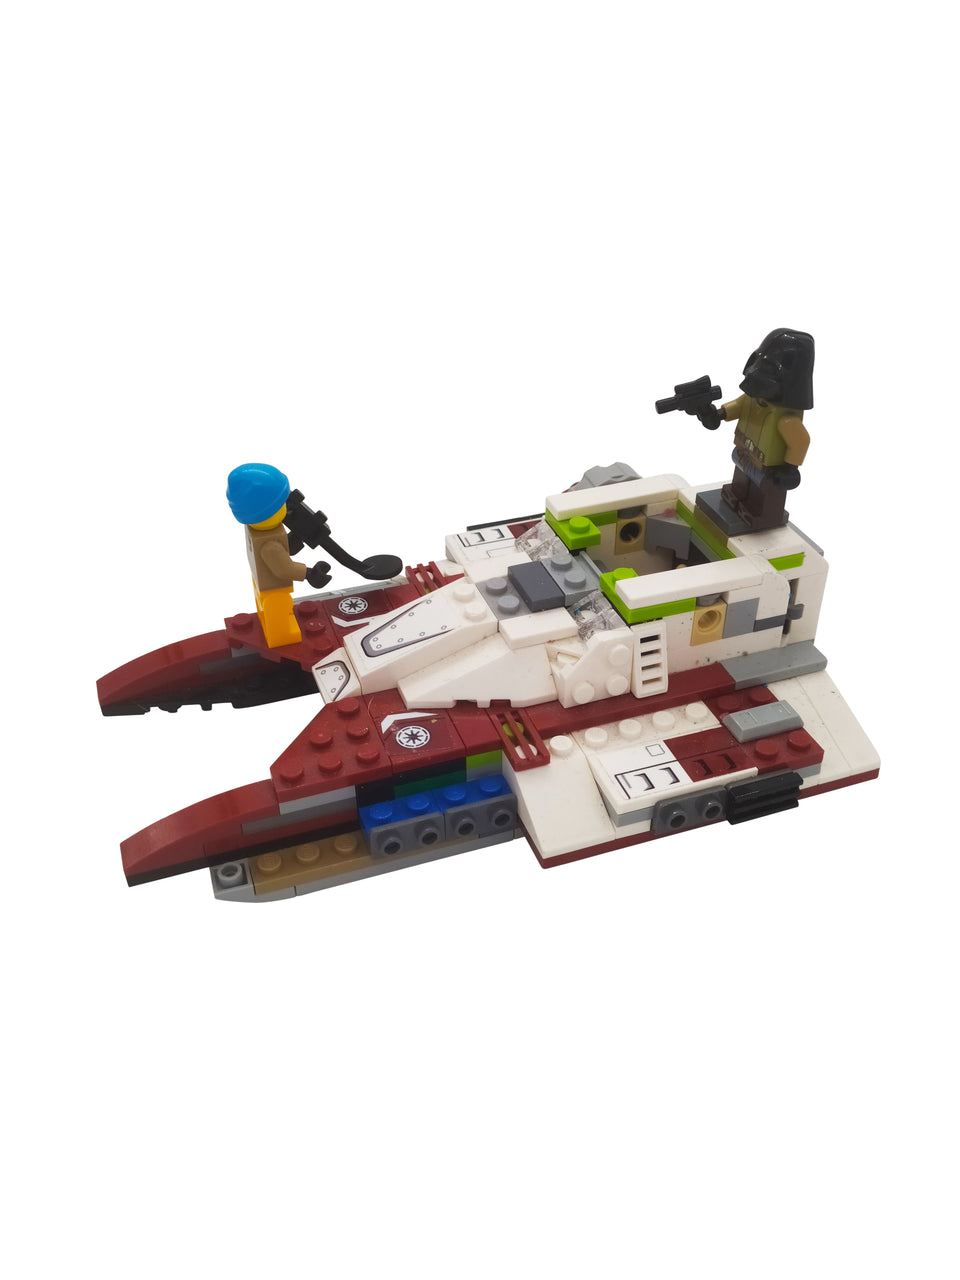 Lego Scene - Space Ship with accessories